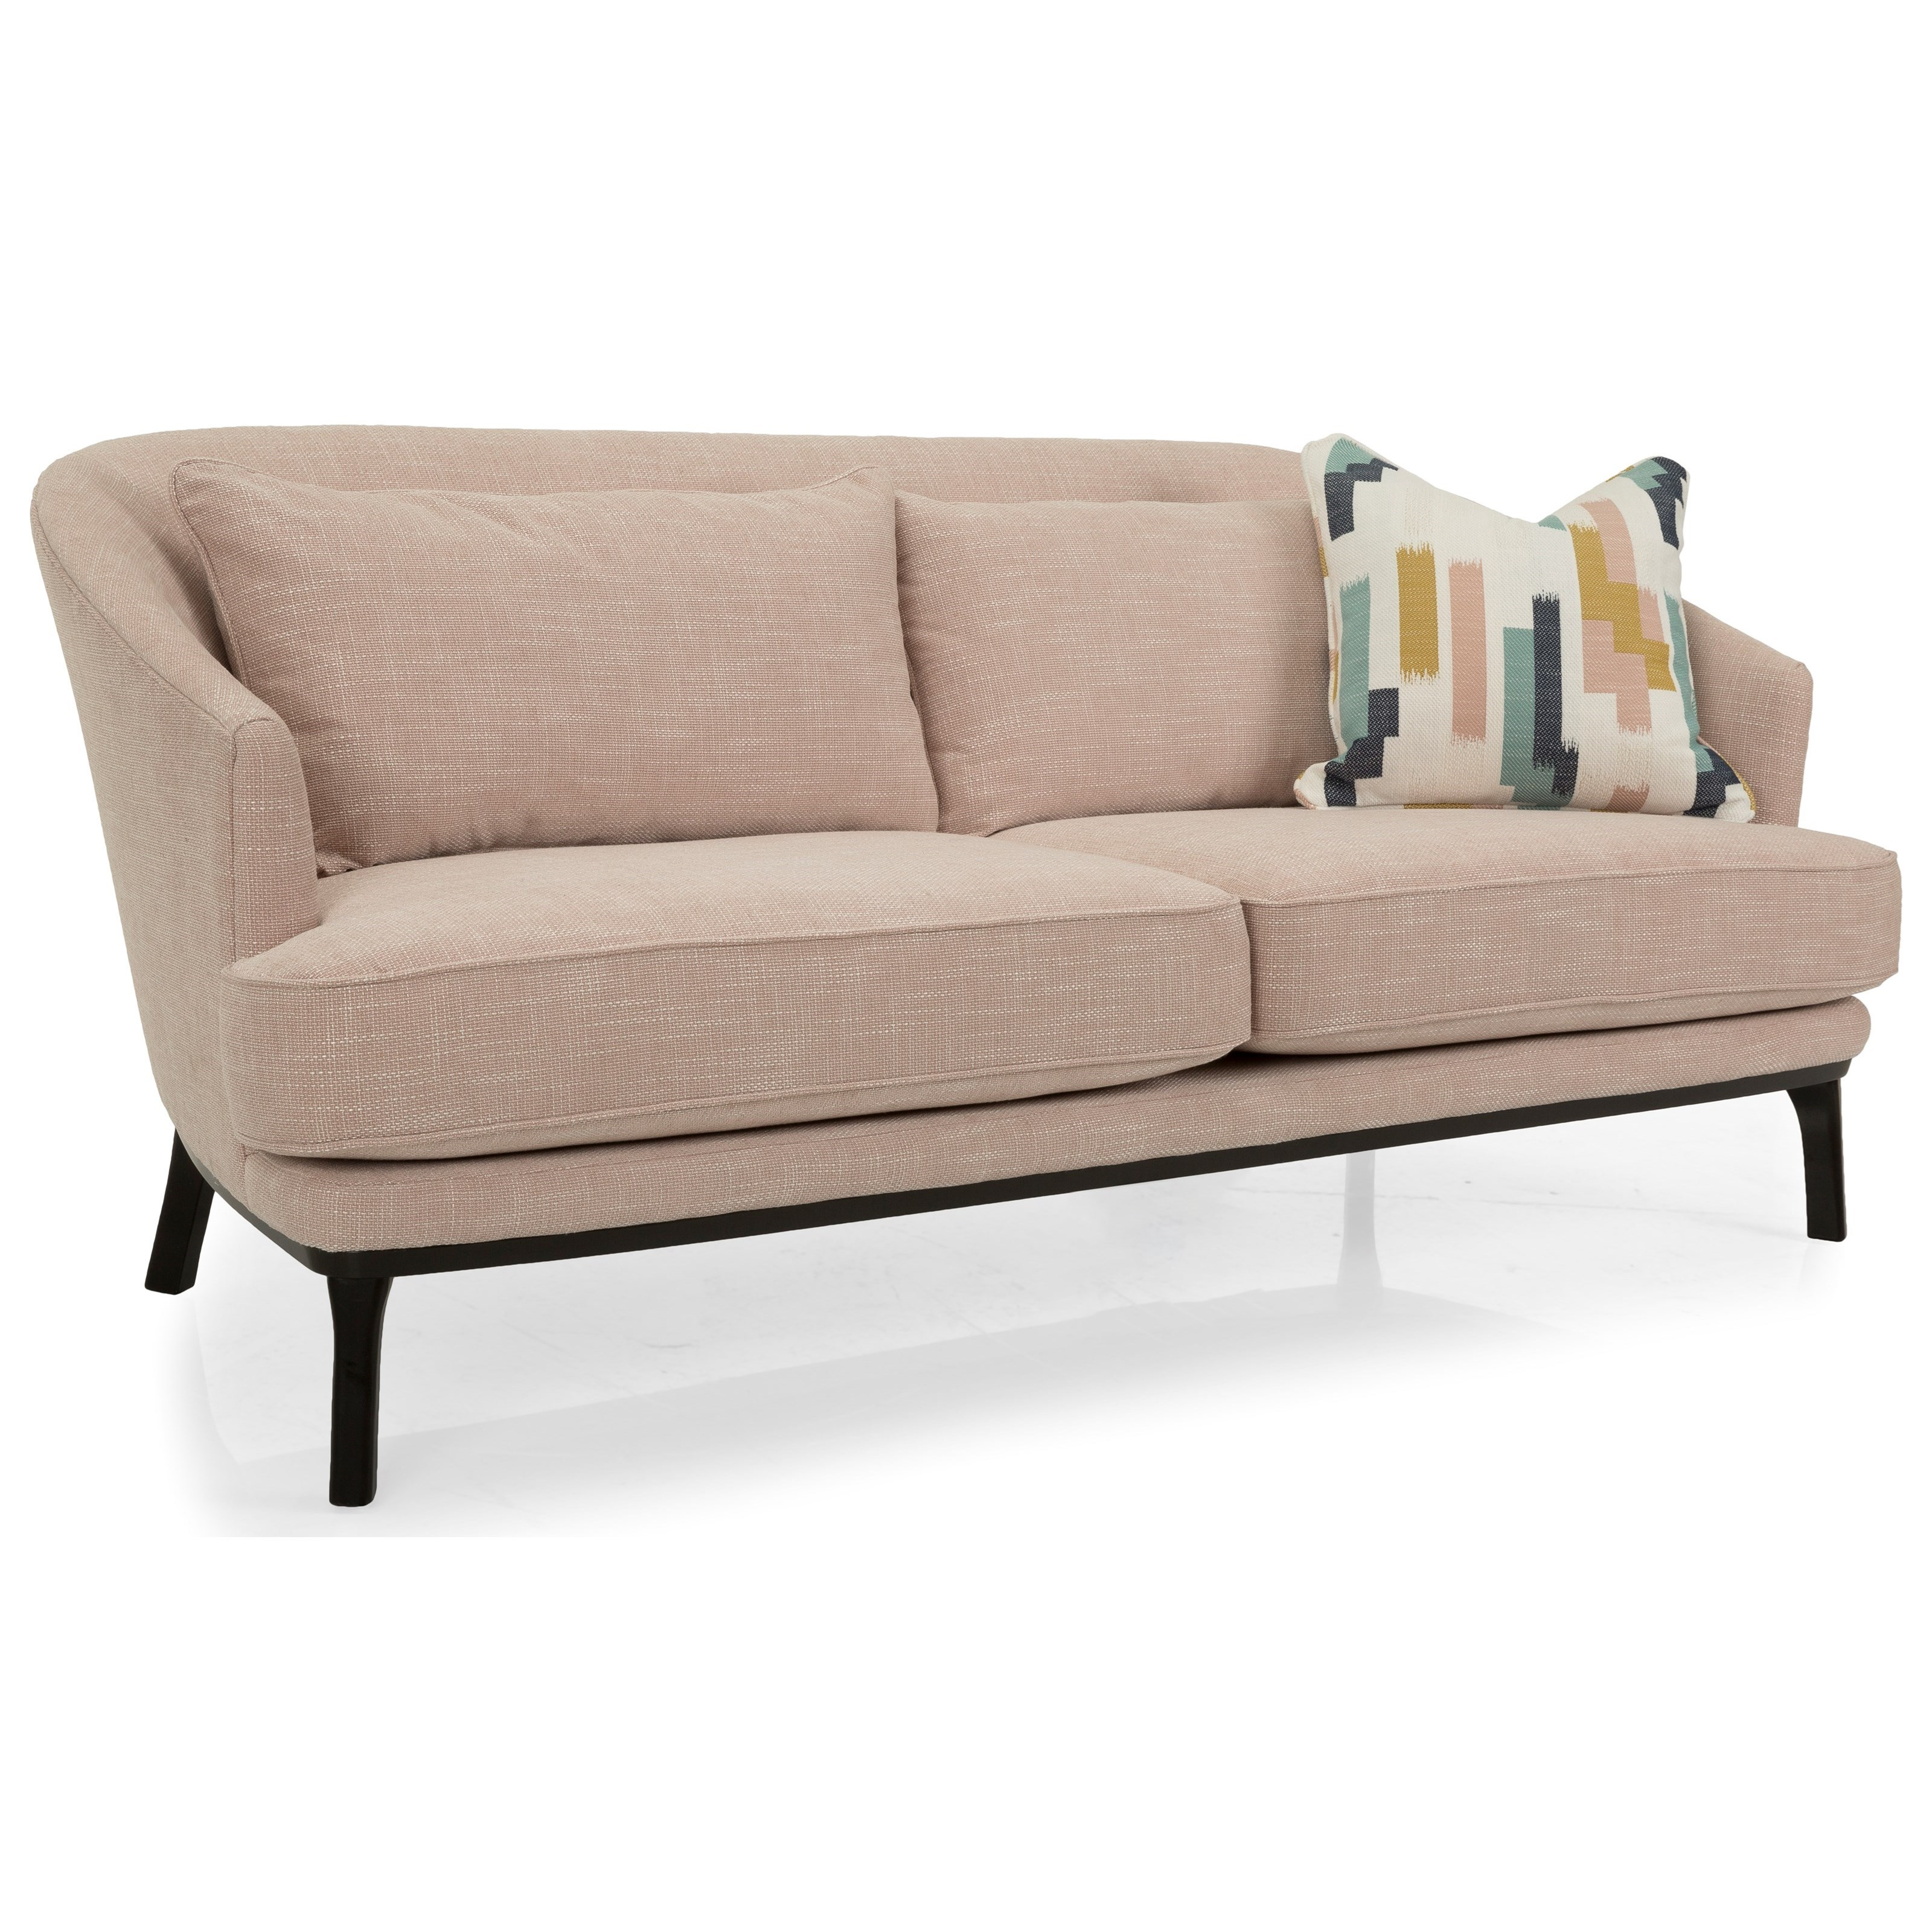 2883 Sofa by Decor-Rest at Reid's Furniture